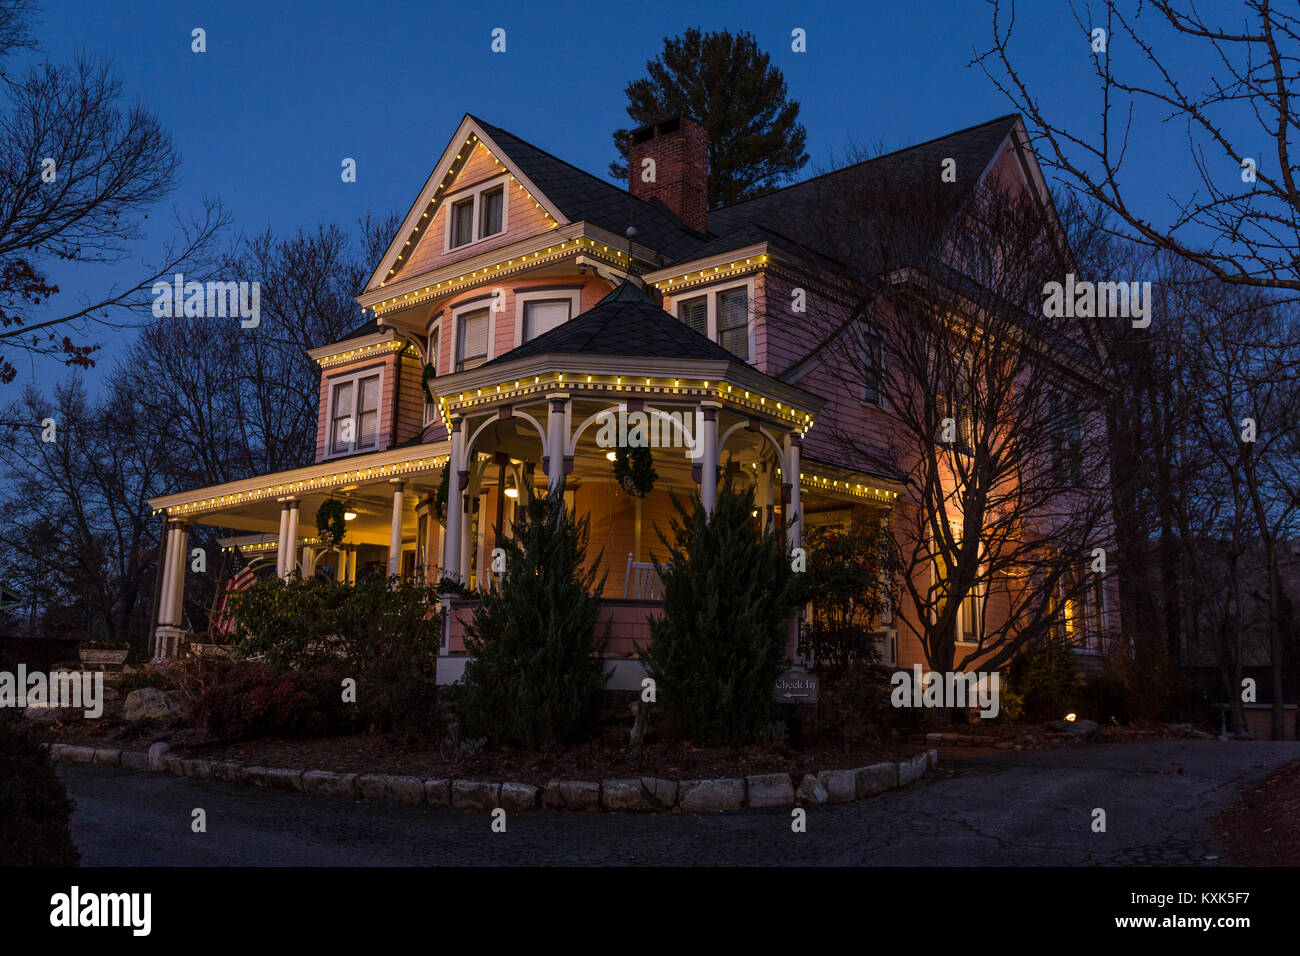 Dusk sets over an elegant Queen Anne Victorian property in Asheville, NC. - Stock Image